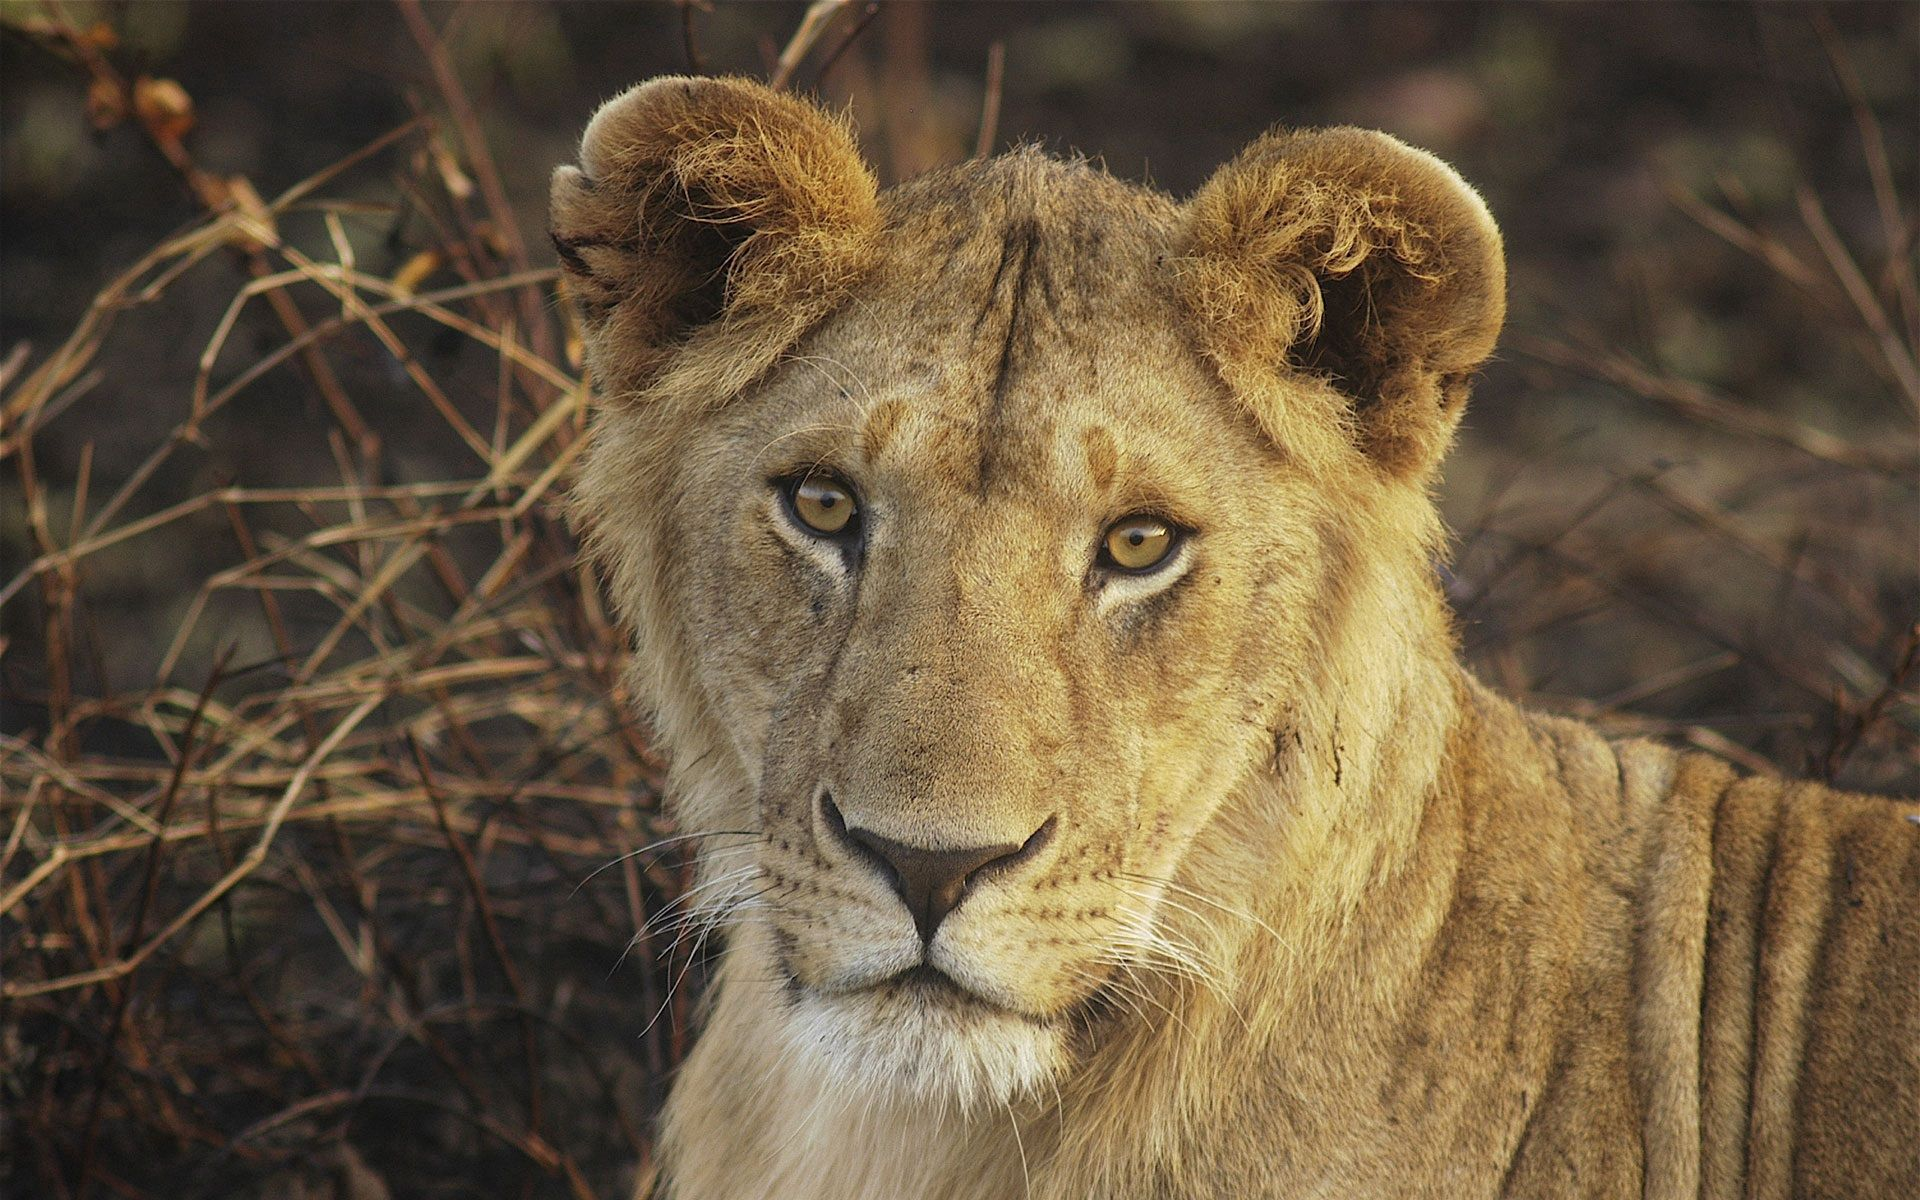 95099 download wallpaper Animals, Lioness, Young, Muzzle, Big Cat, Nice, Sweetheart screensavers and pictures for free